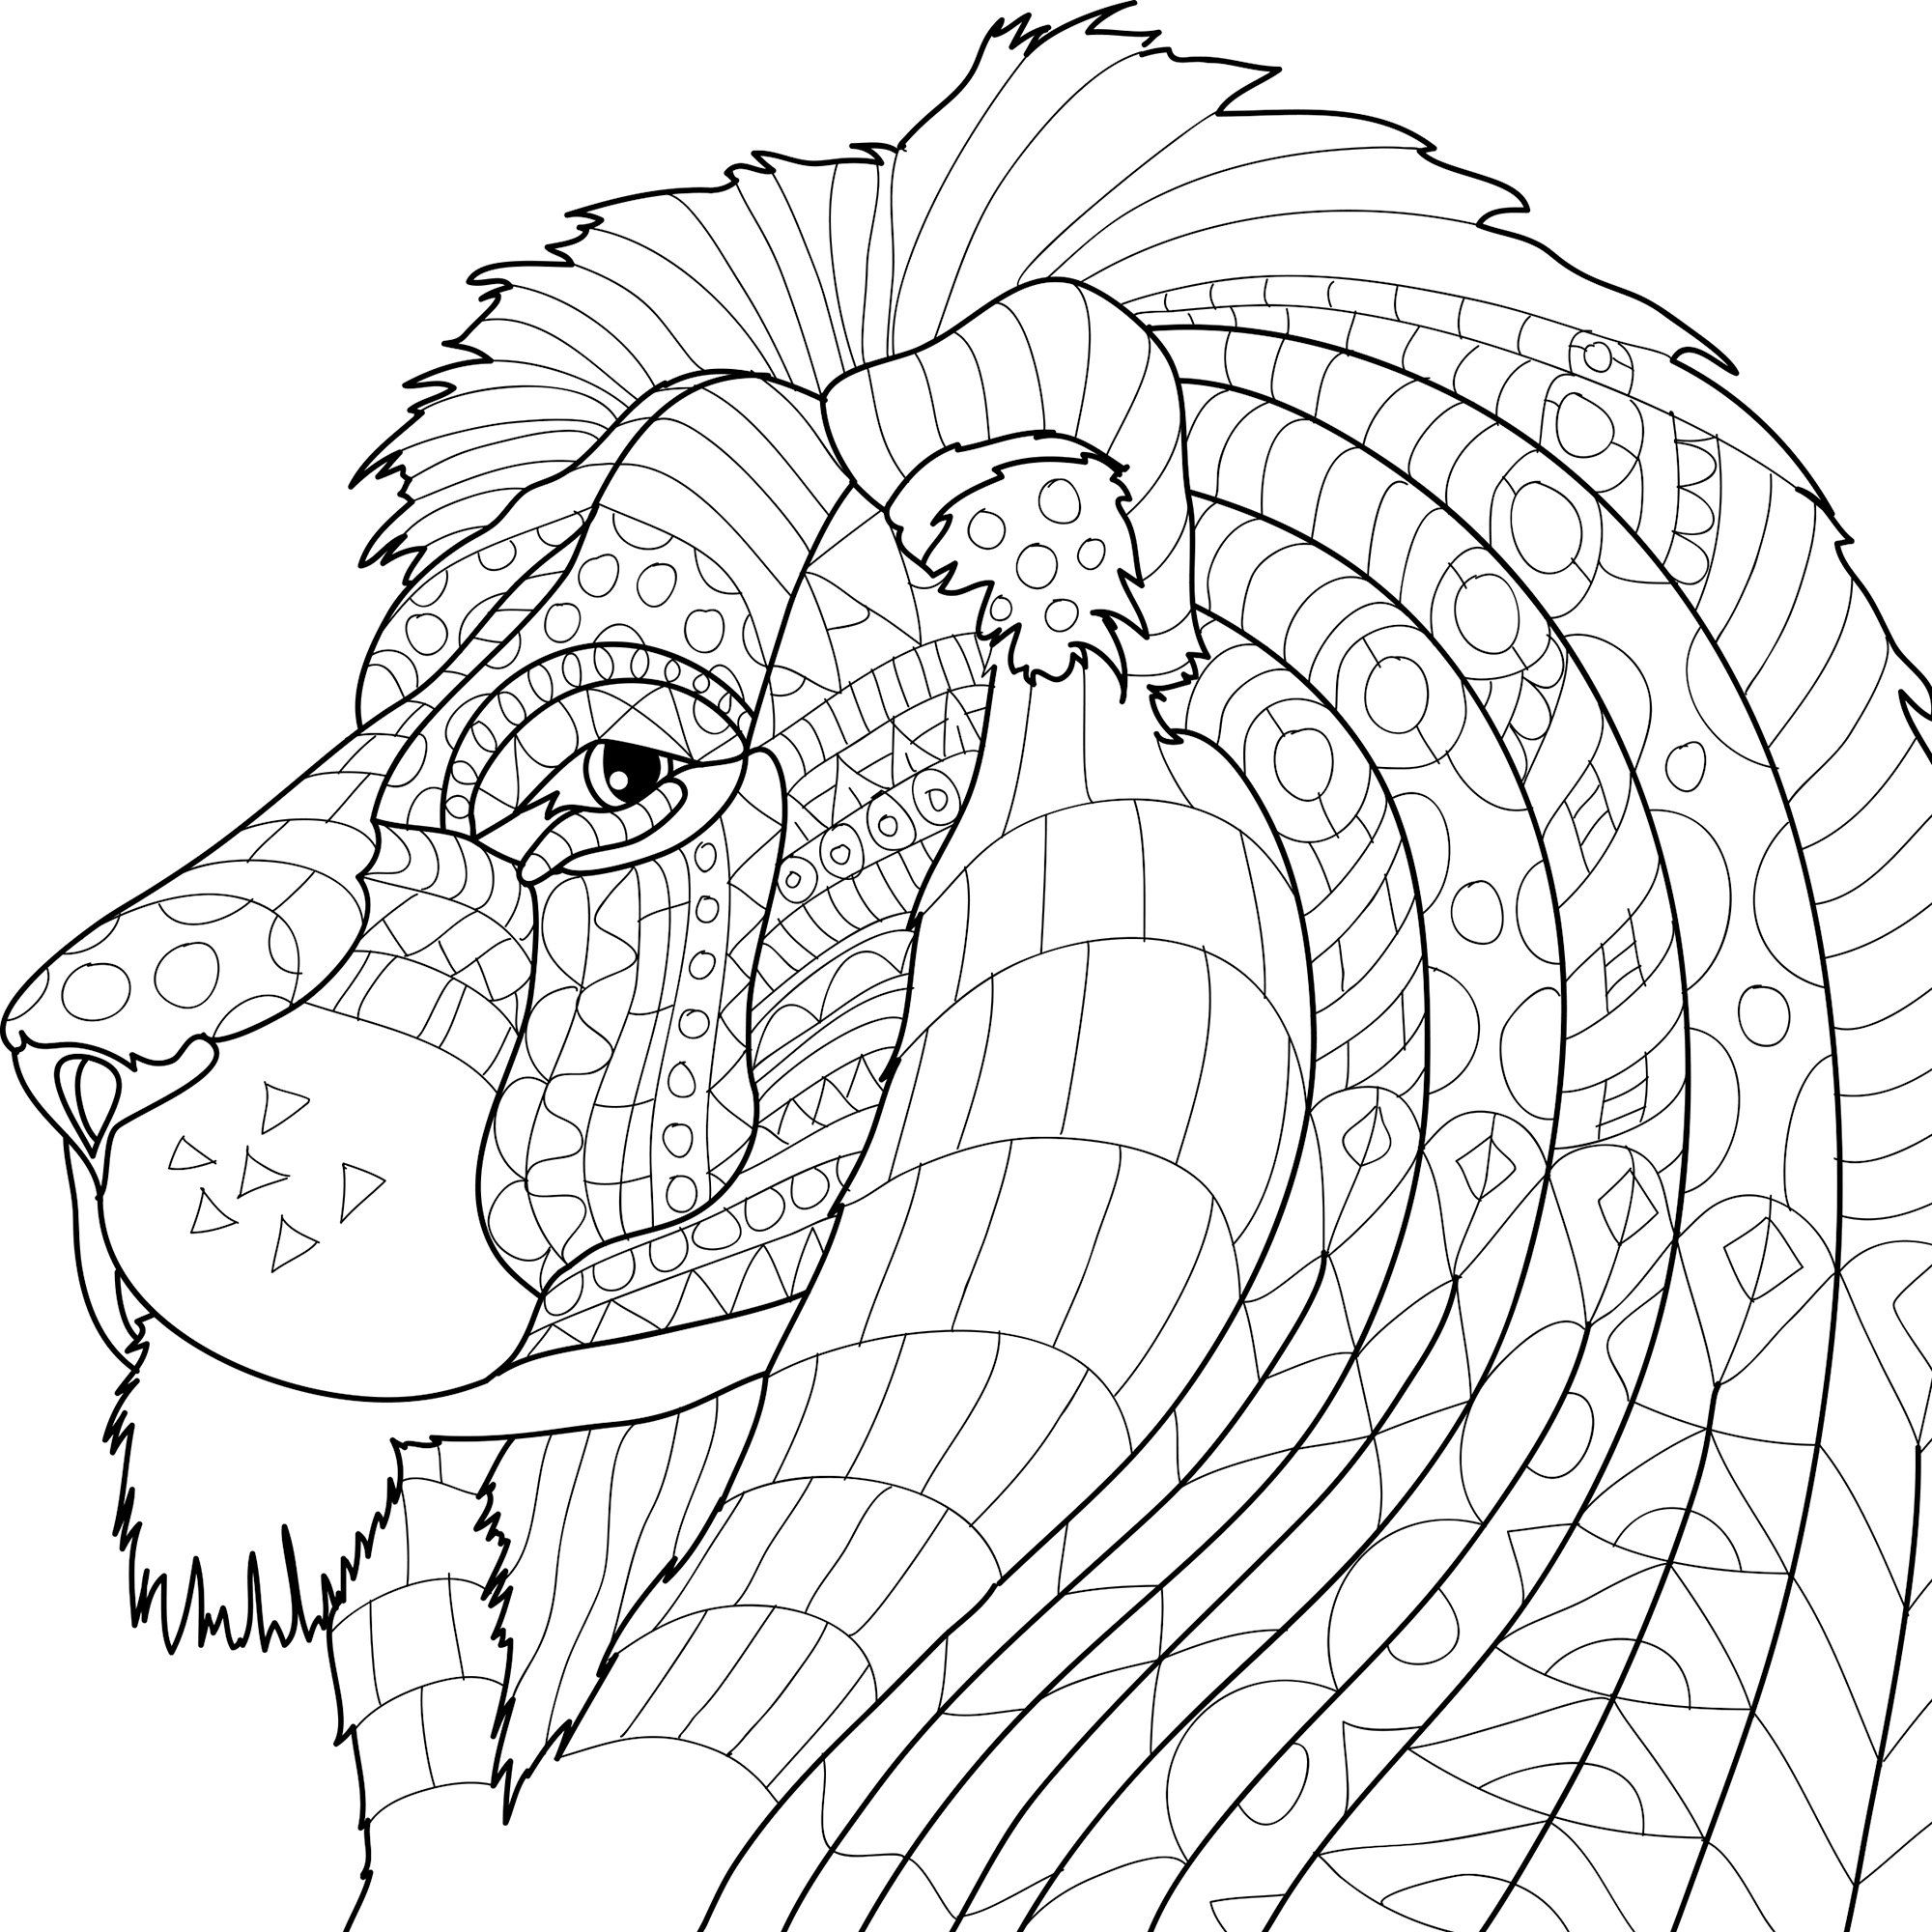 Coloring book animal kingdom - Amazon Com Animal Kingdom Adult Coloring Book Set With 24 Colored Pencils And Pencil Sharpener Included Color Your Way To Calm 9781988137209 Newbourne